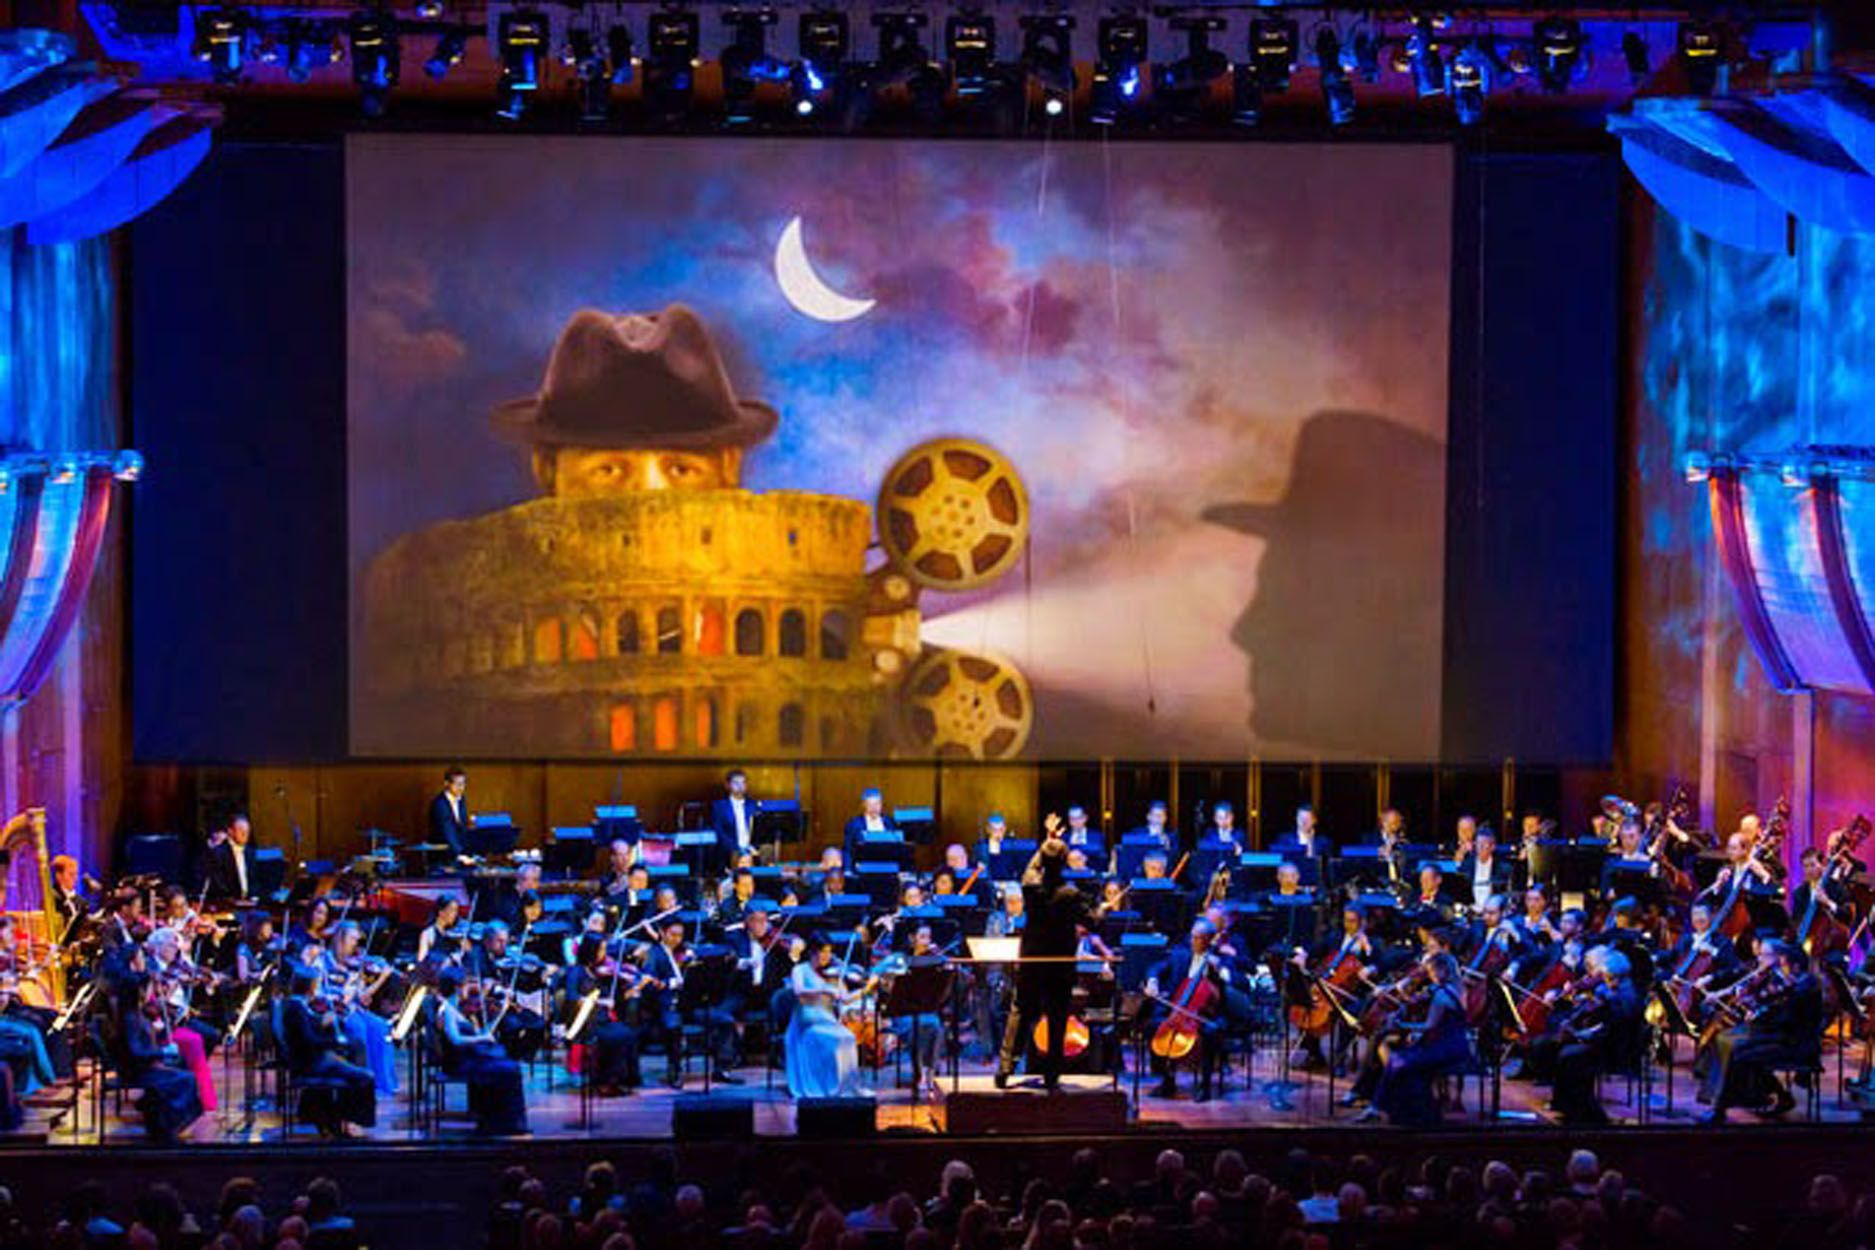 New York Philharmonic Opening Gala 2014, projections and set design by Giuseppe Ragazzini